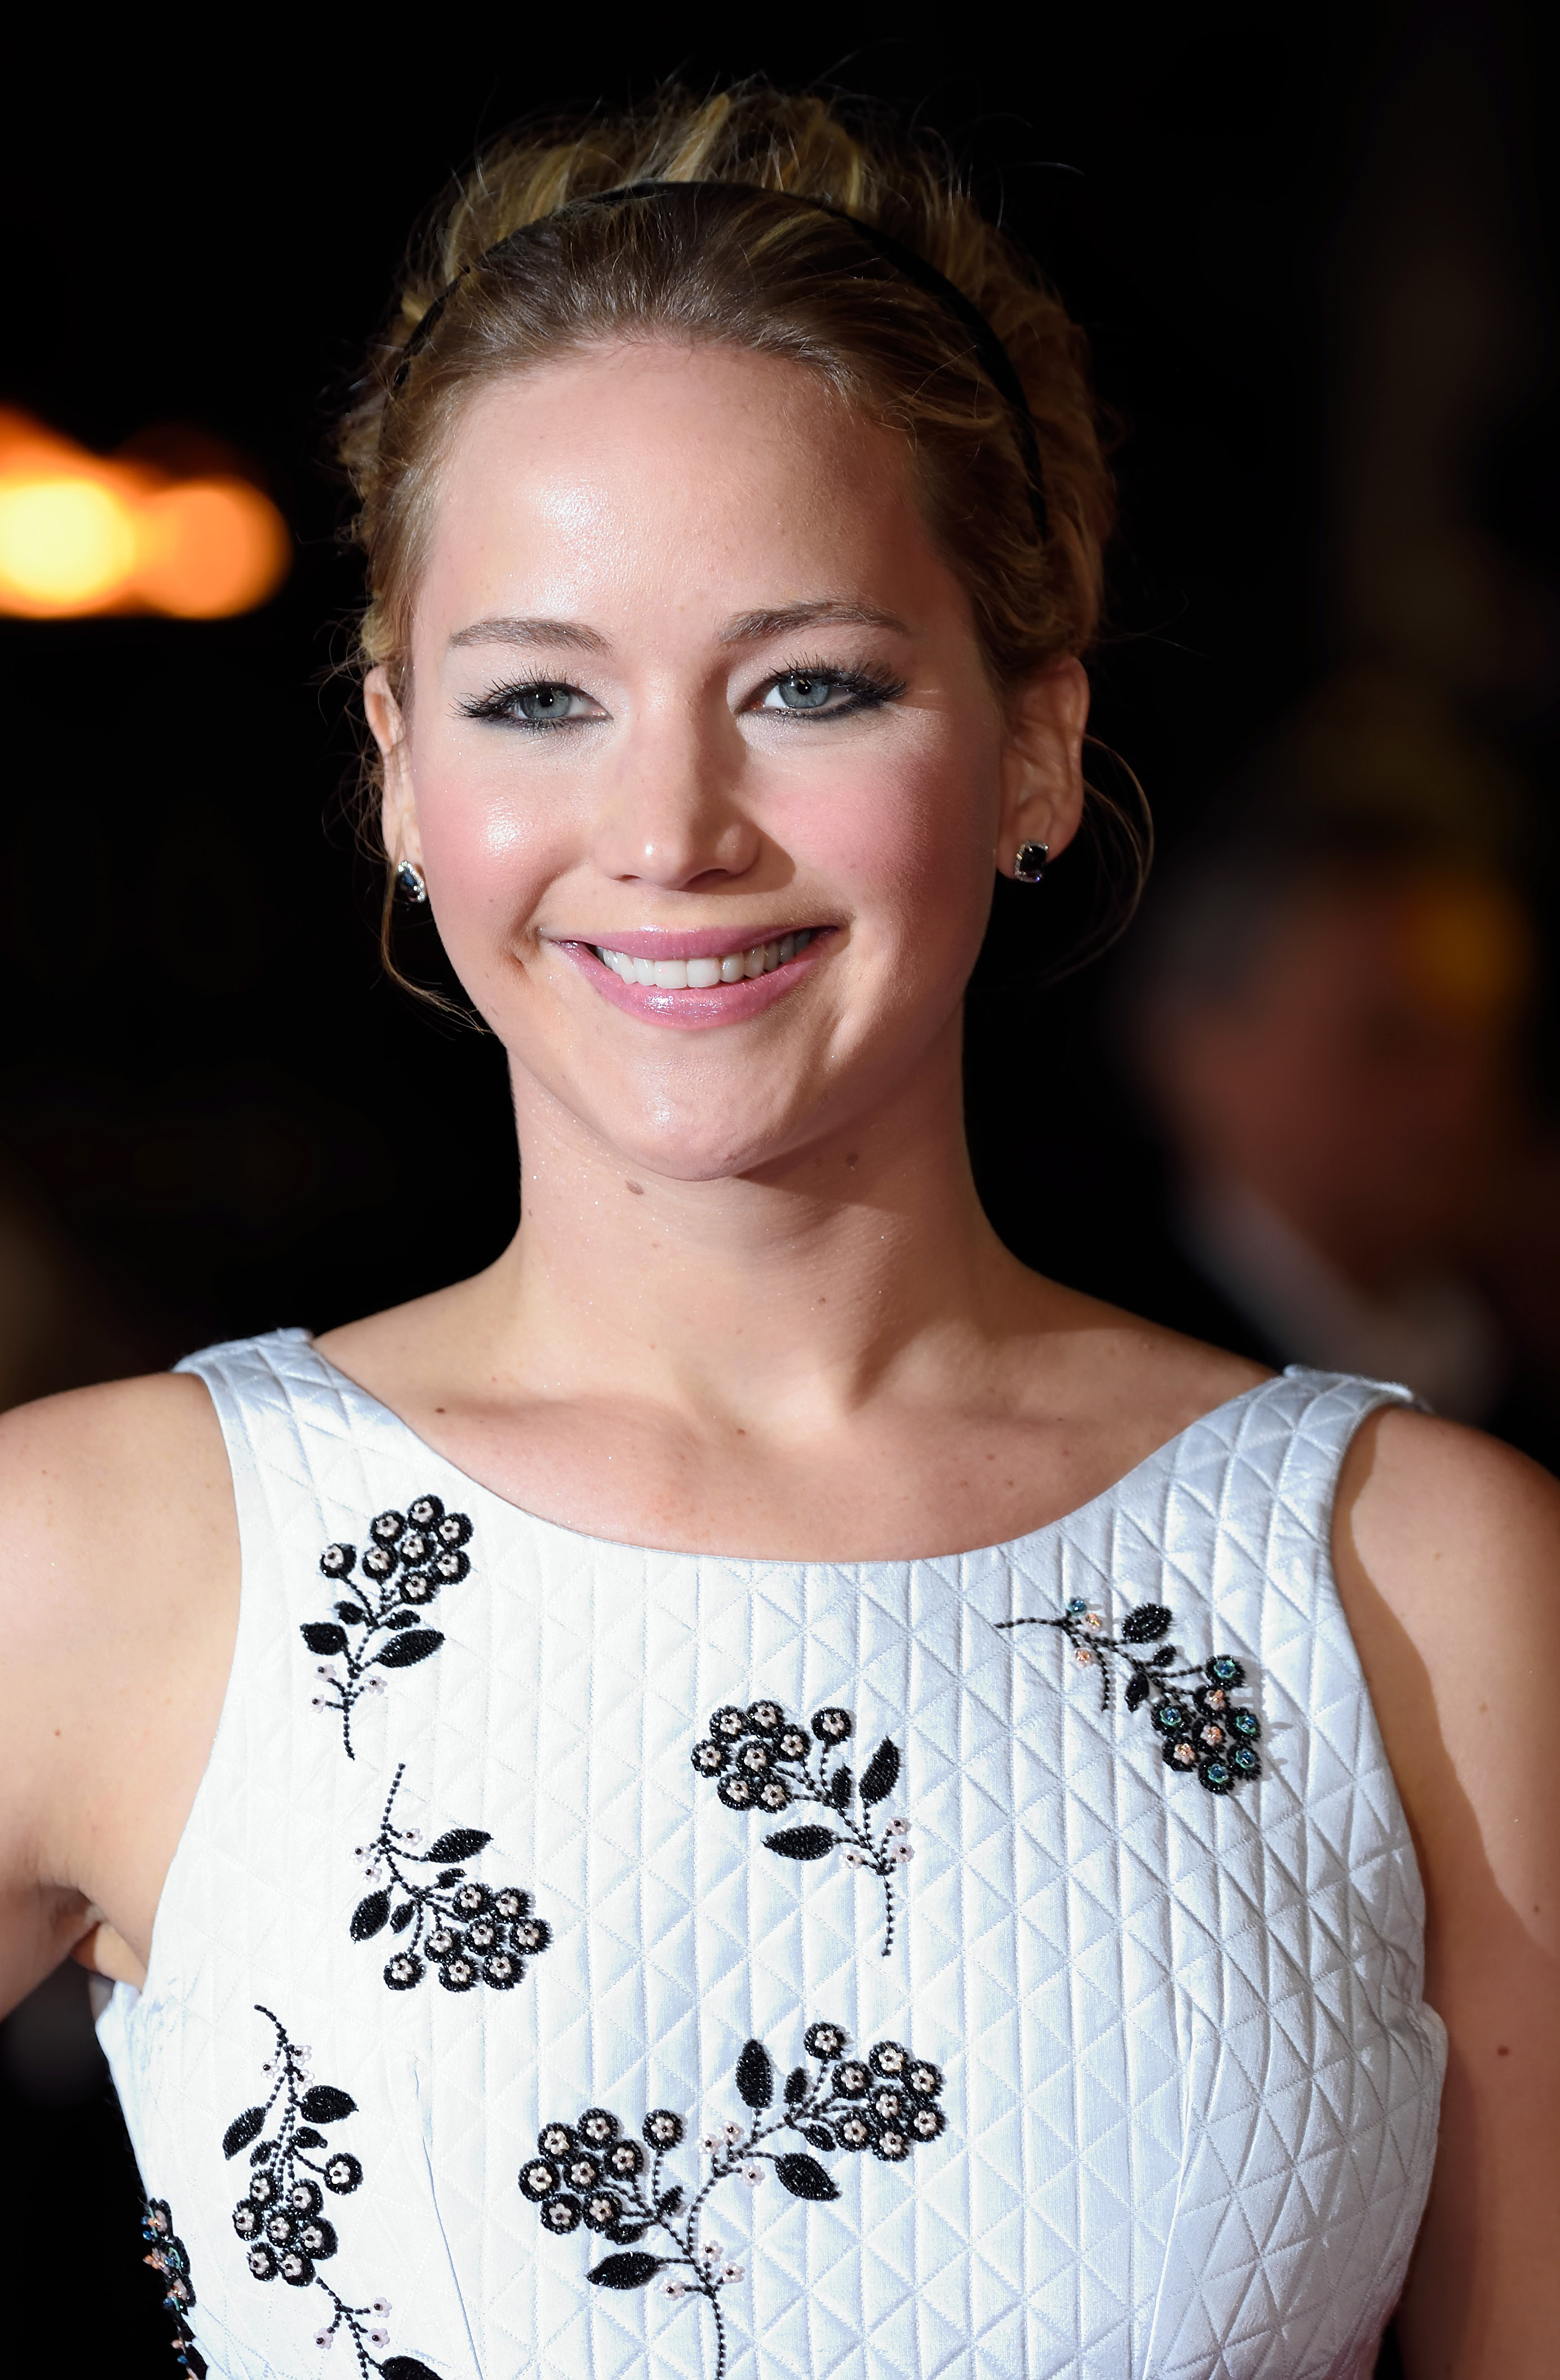 Jennifer Lawrence attends the World Premiere of  The Hunger Games: Mockingjay Part 1  at Odeon Leicester Square on November 10, 2014 in London, England.